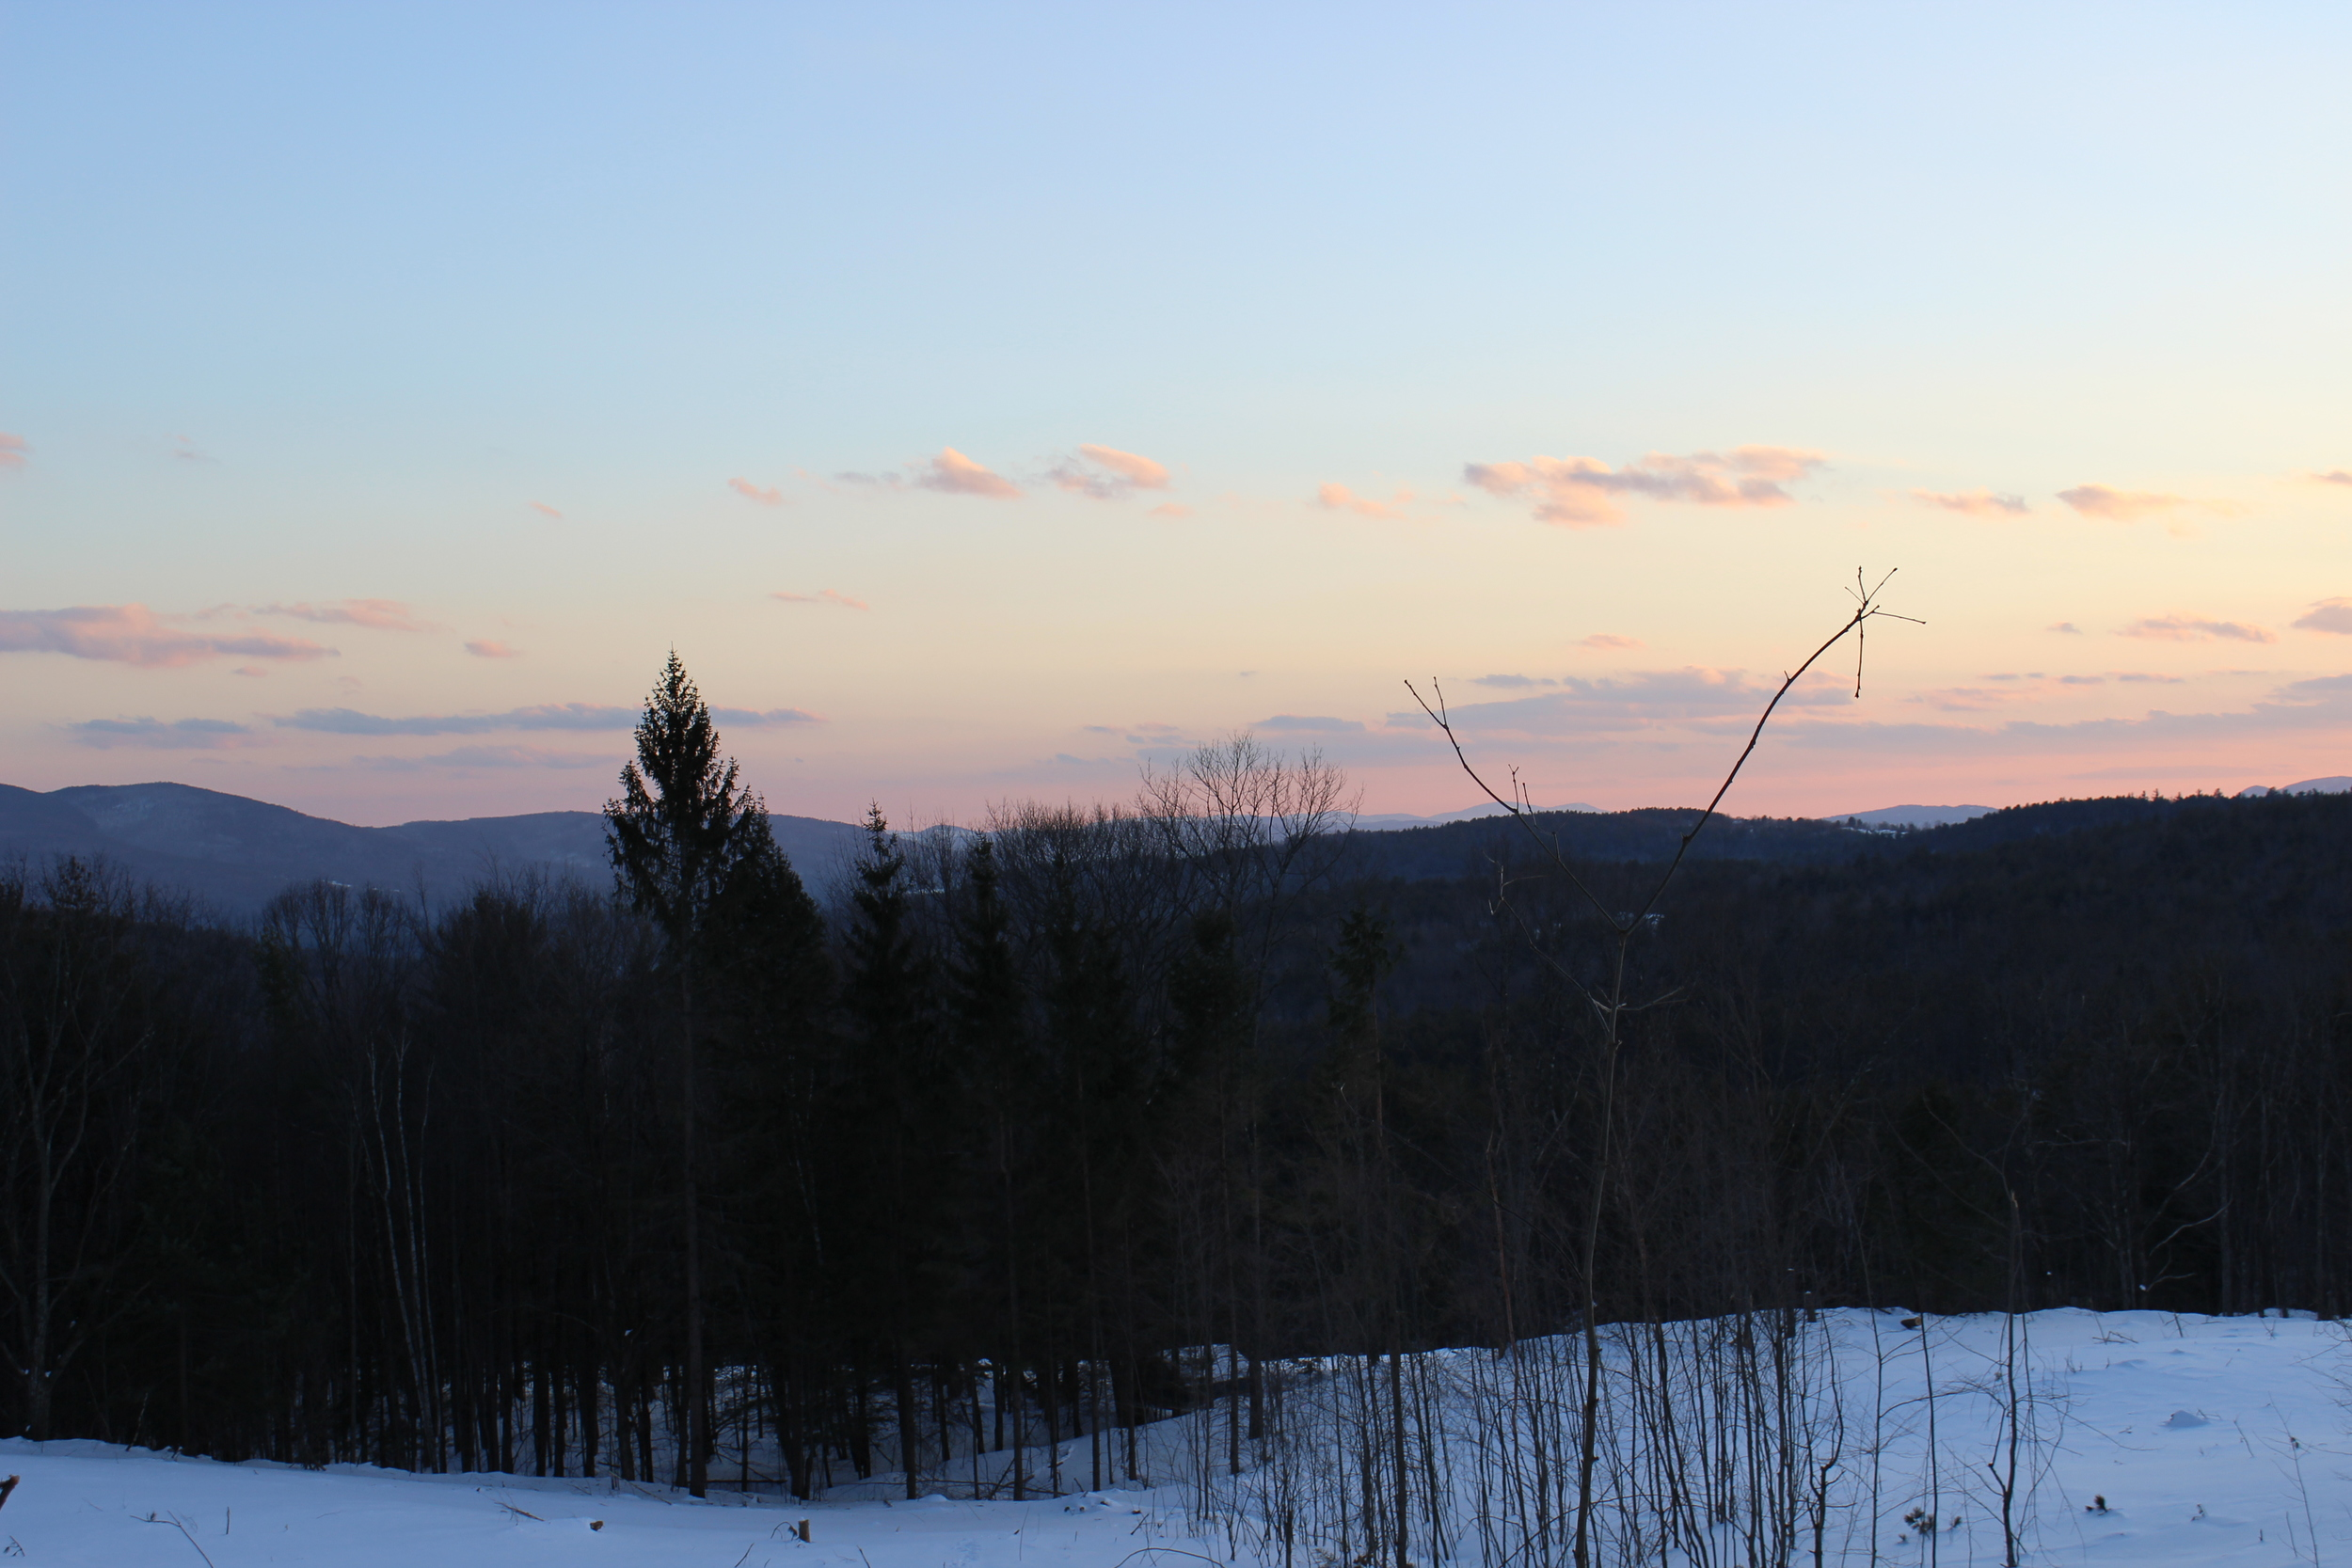 The thing about waking up for the sunrise on a February morning in the White Mountains is that, among other things, it sure ispretty.